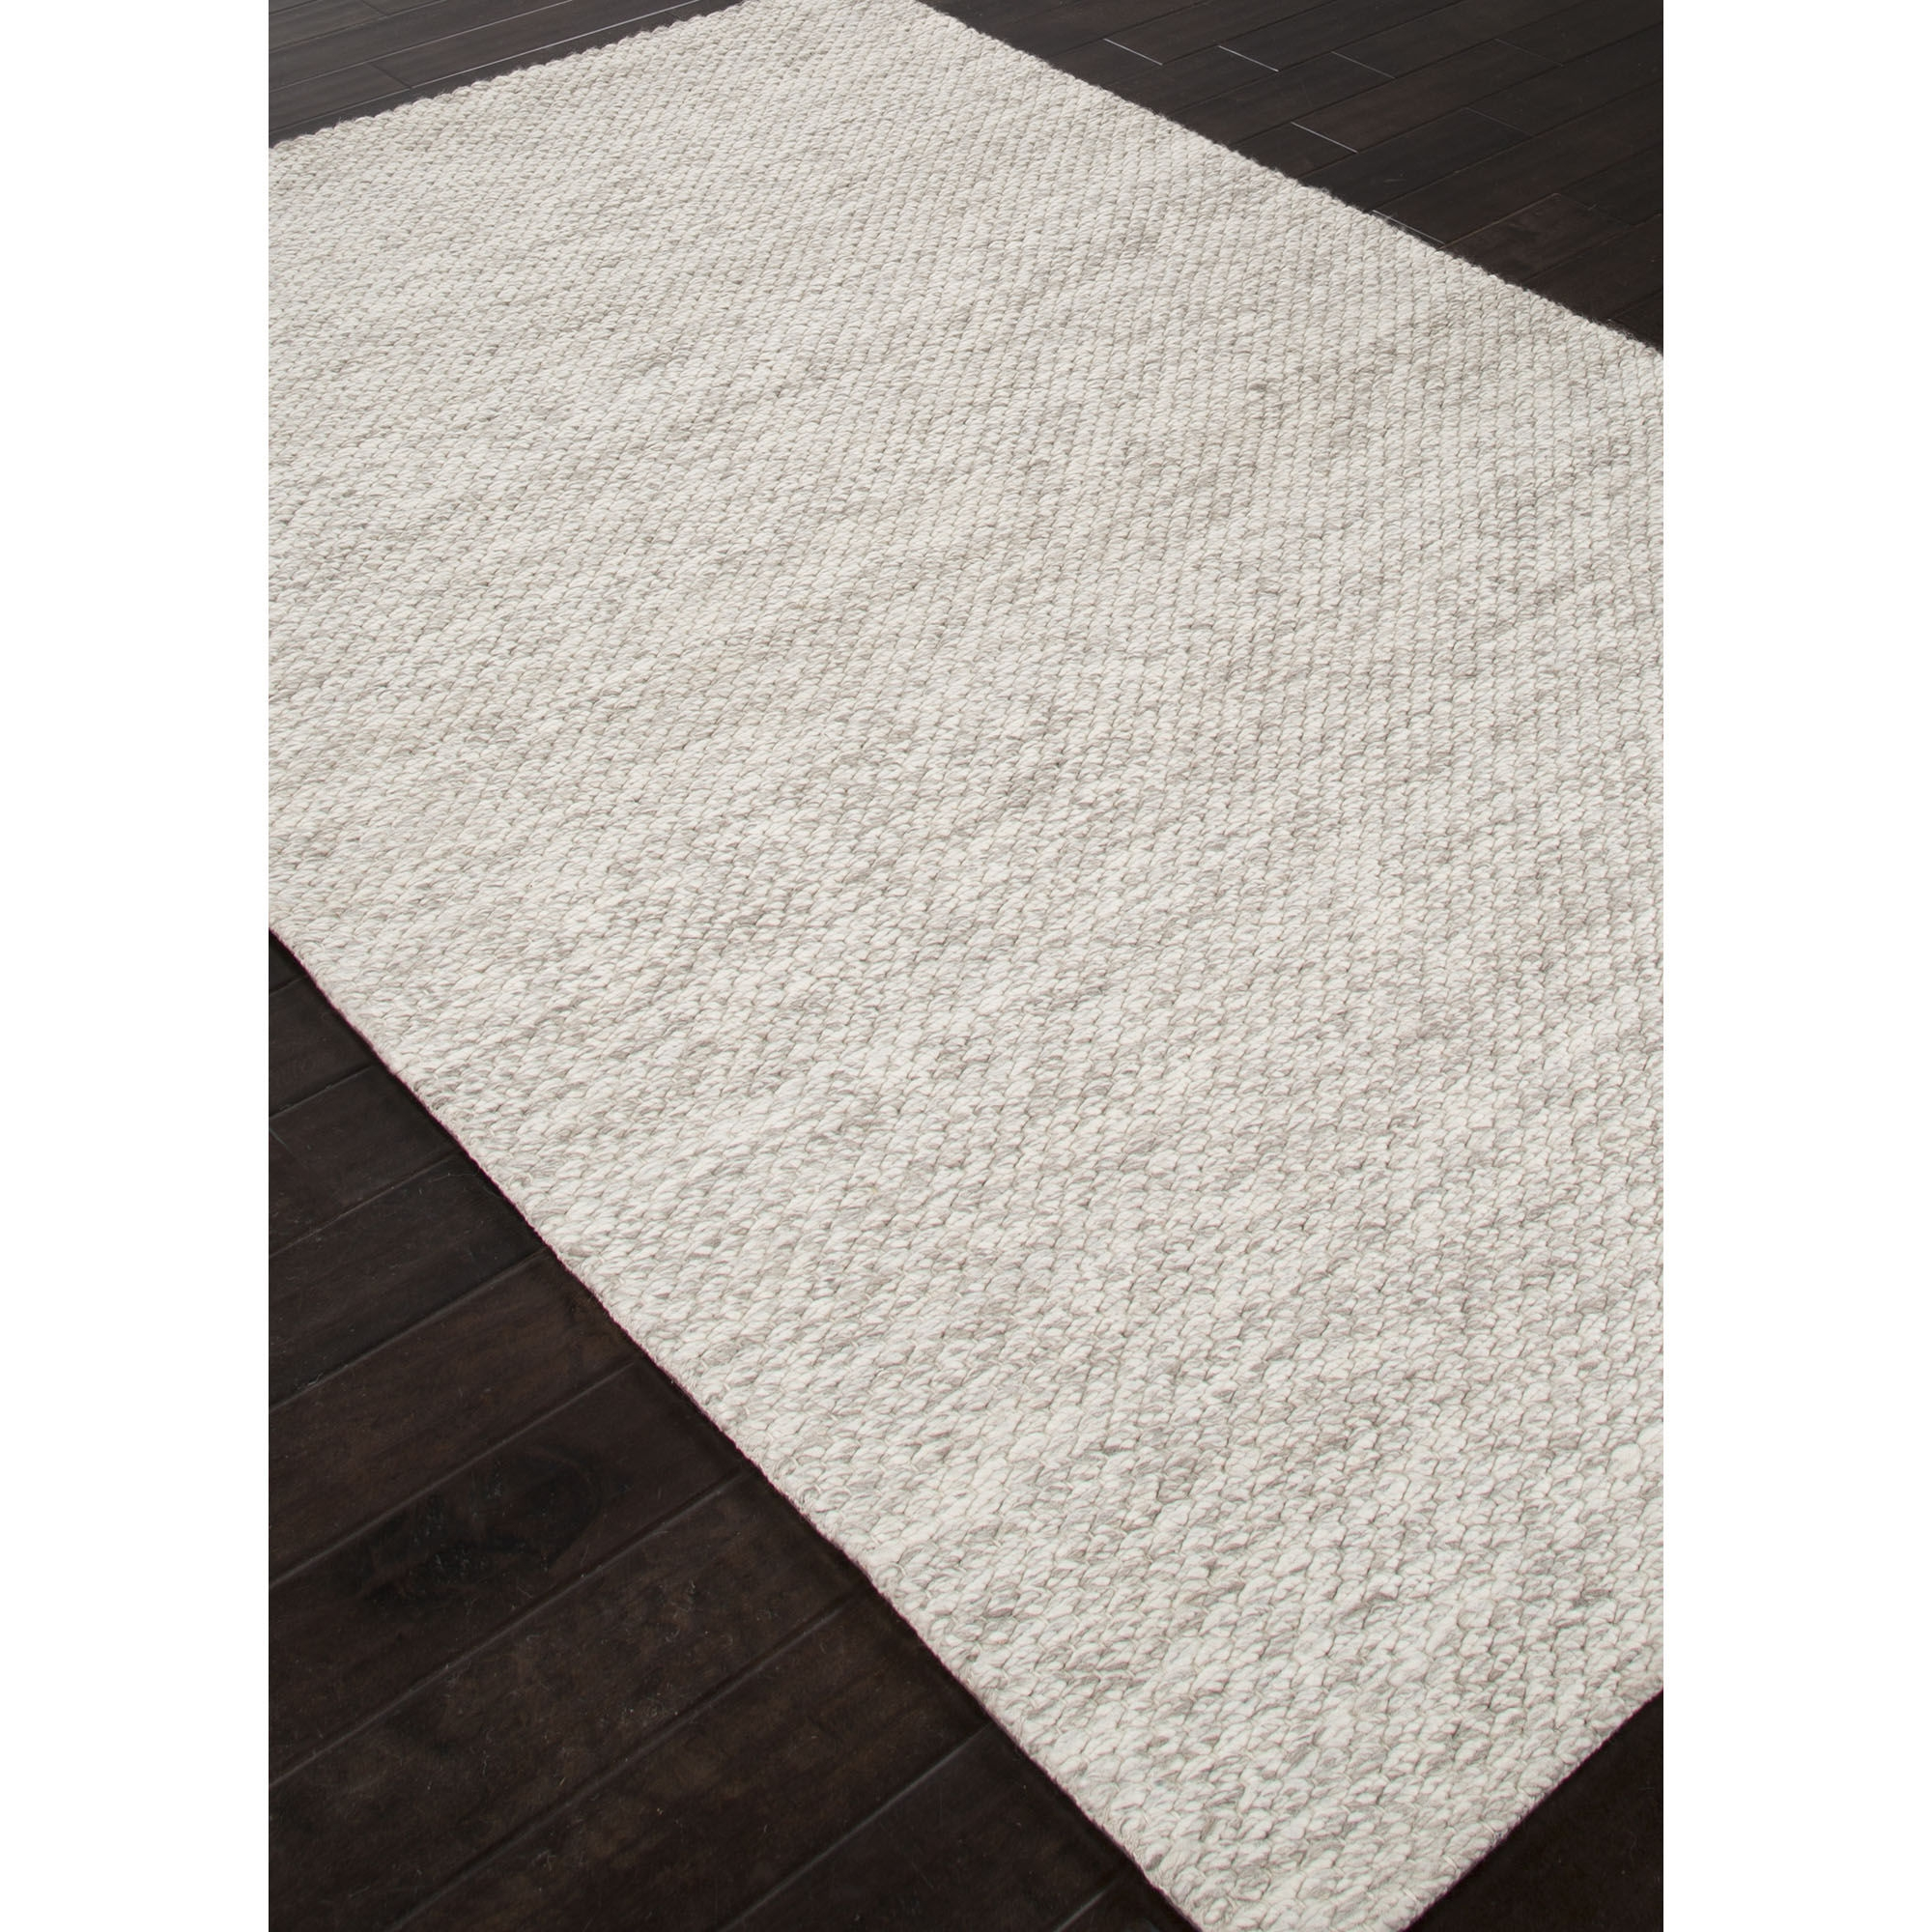 Rugs Wool Area 8 10 Clearance